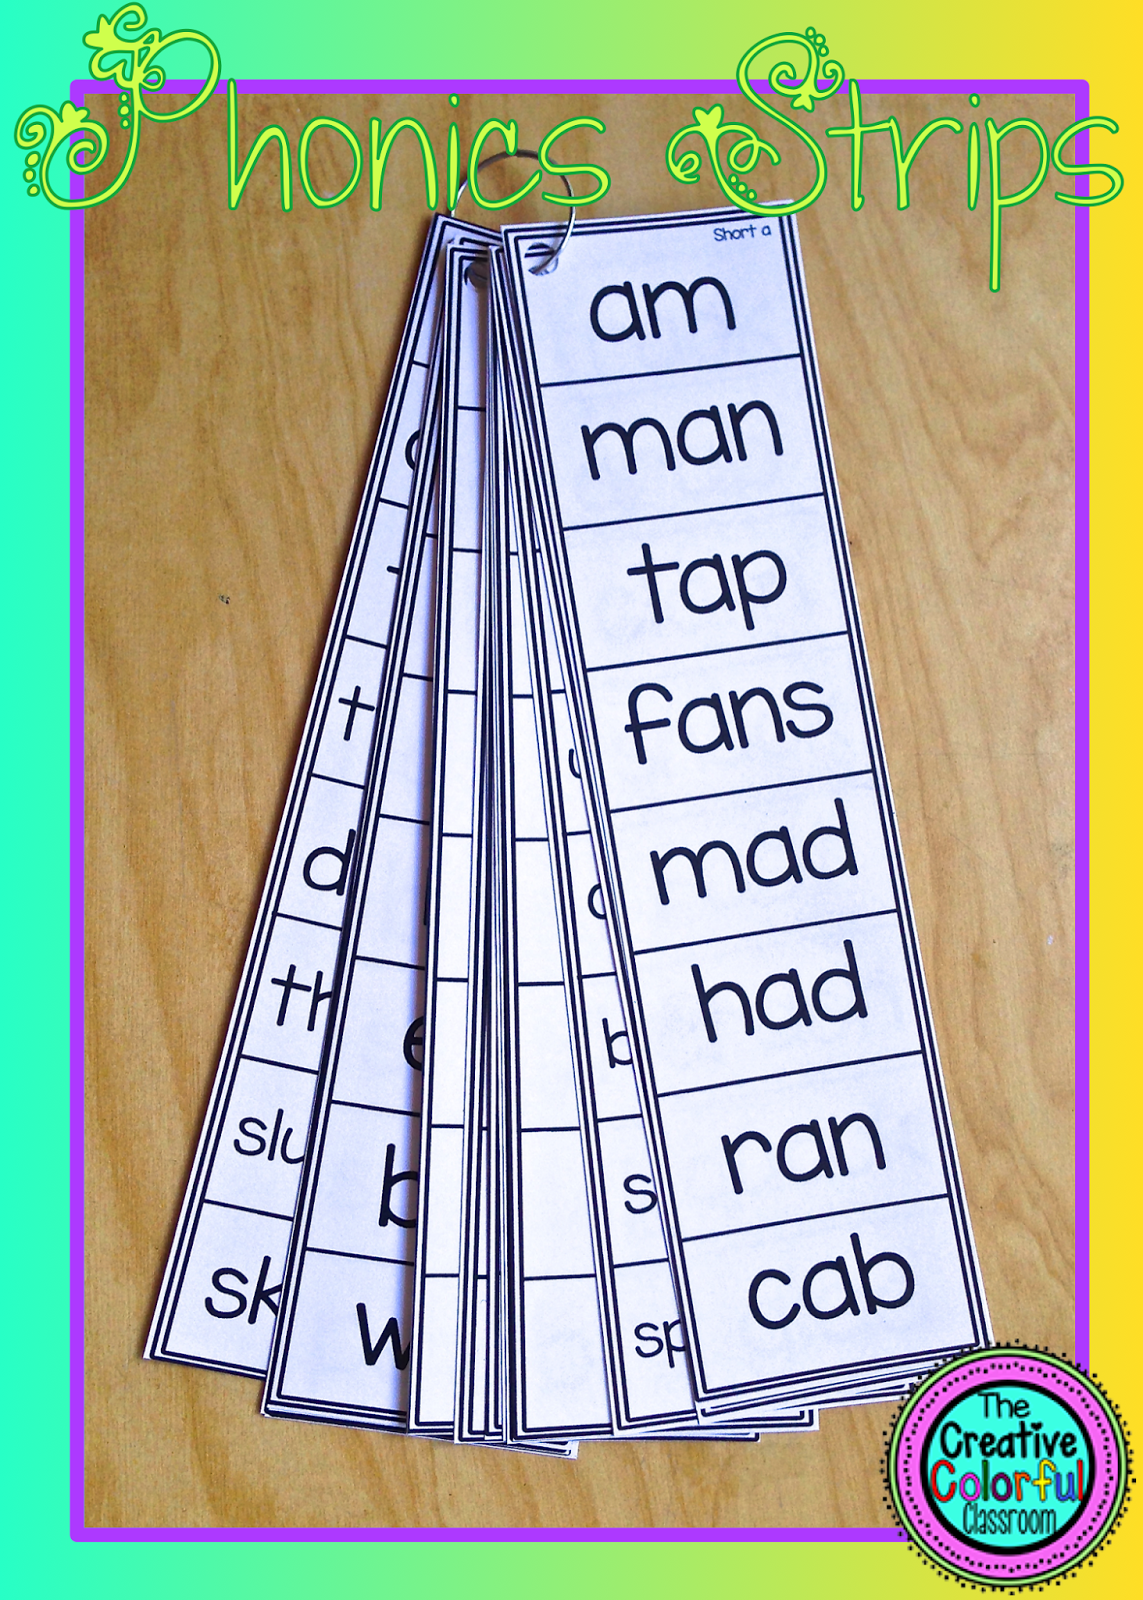 The Creative Colorful Classroom Phonics Strips